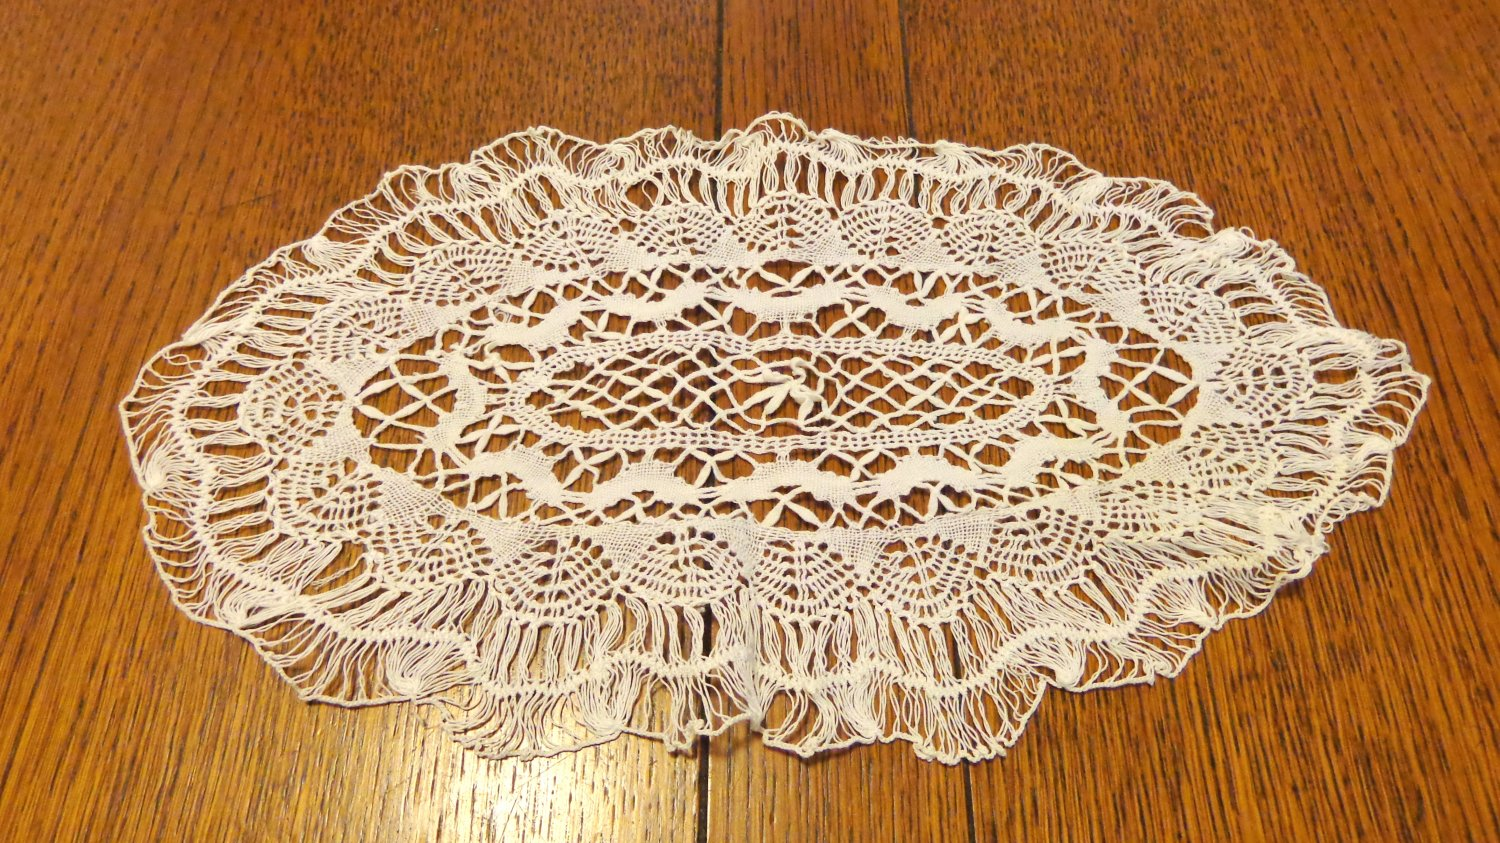 13 inch bobbin lace oval doily white wispy spotless perfect vintage hc344